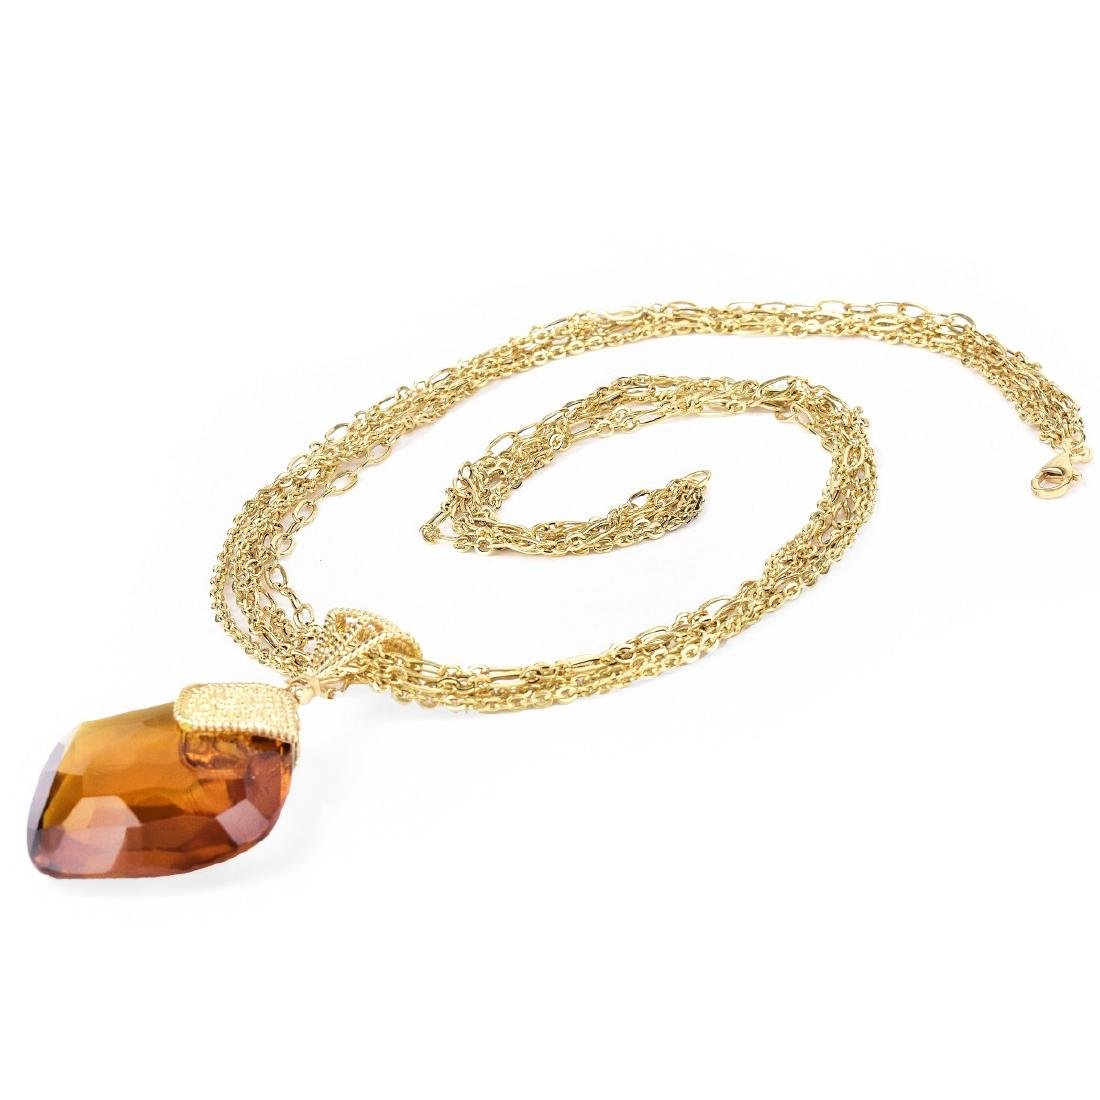 Italian Citrine and 14K Gold Necklace - 3